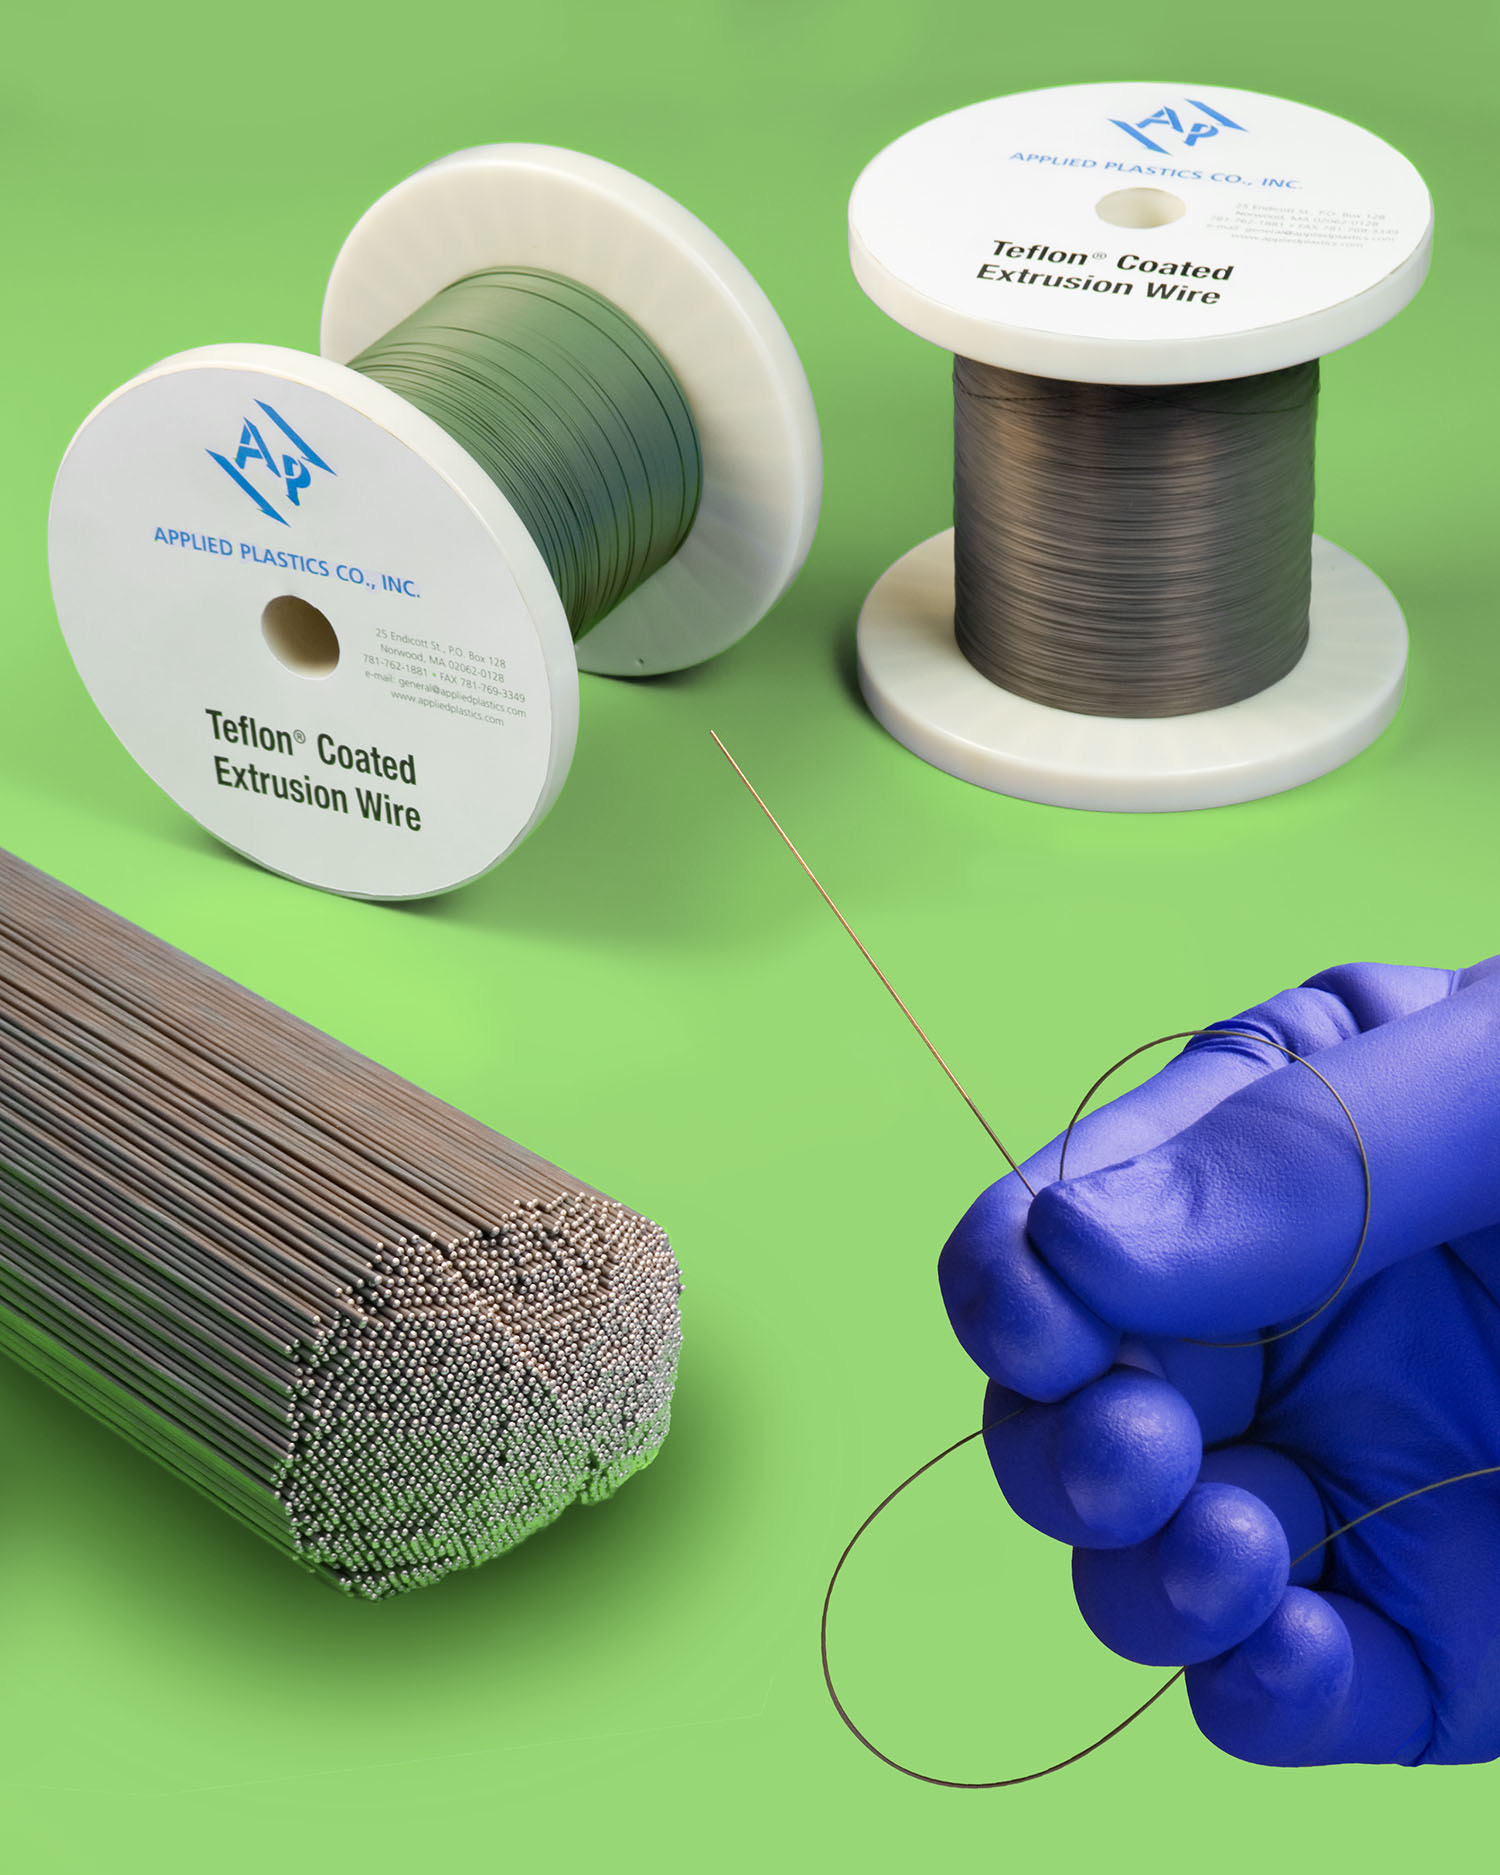 Applied Plastics Introduces Ptfe Natural 174 Coated